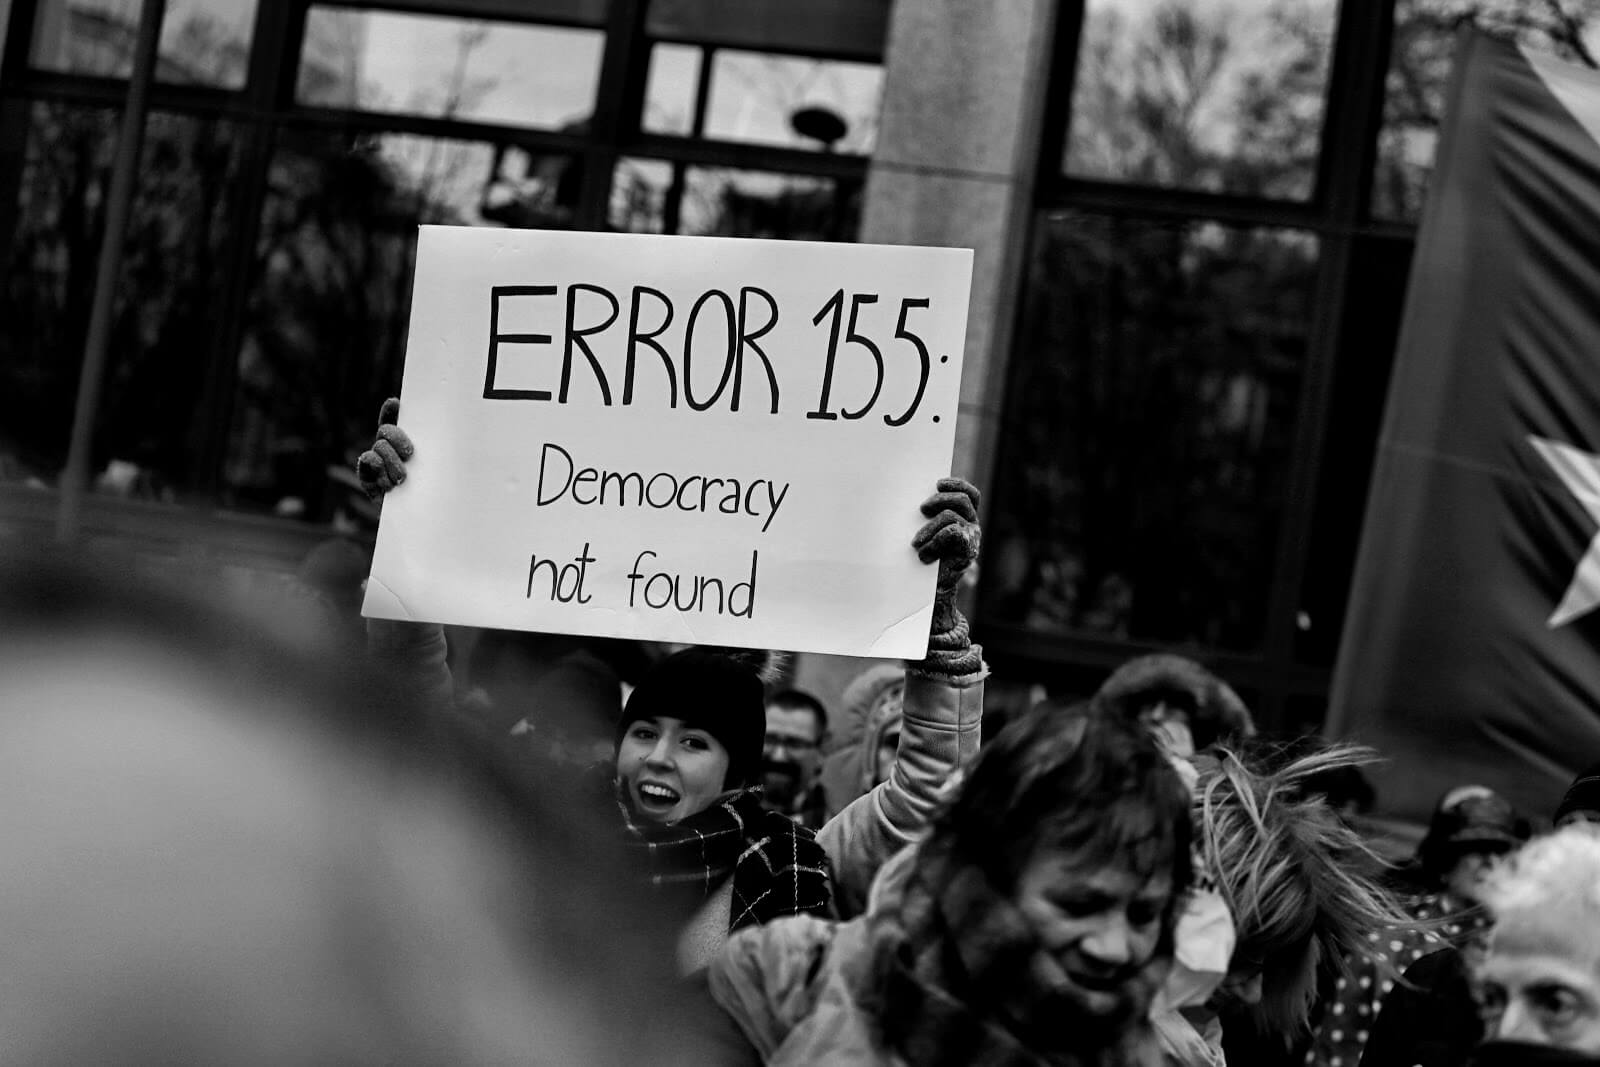 A woman in a crowd holding a sign that says ERROR 155: Democracy not found.